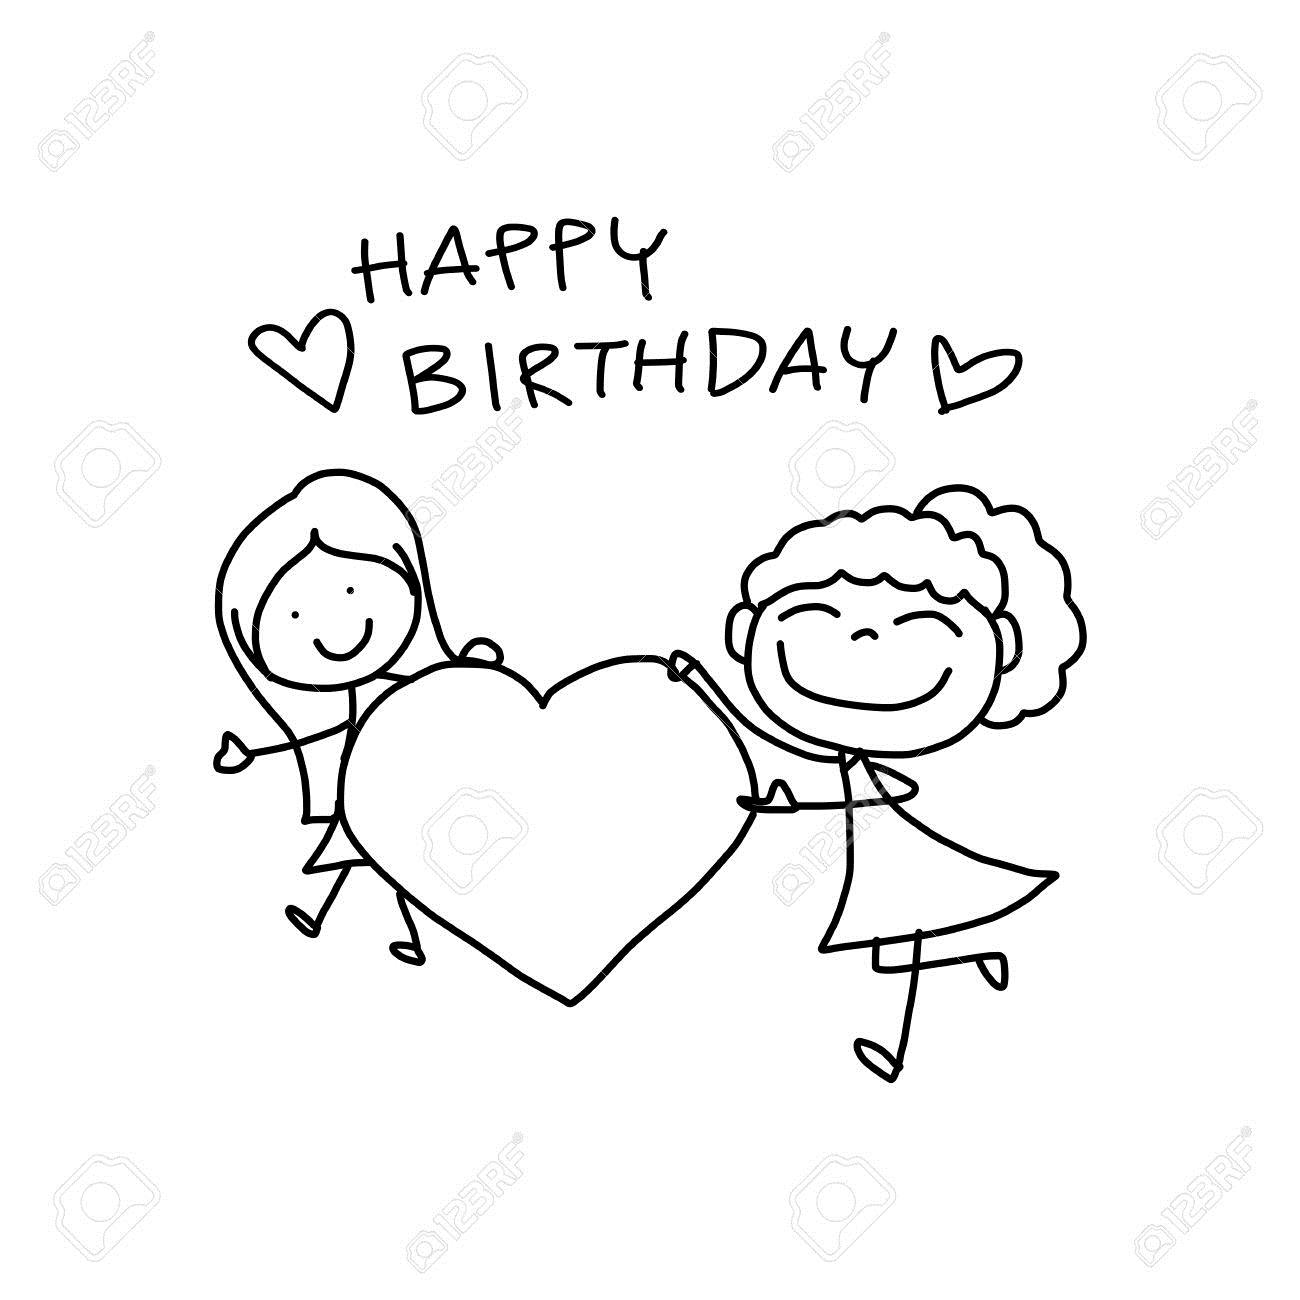 happy birthday pictures to draw ; happy-birthday-drawing-images-16